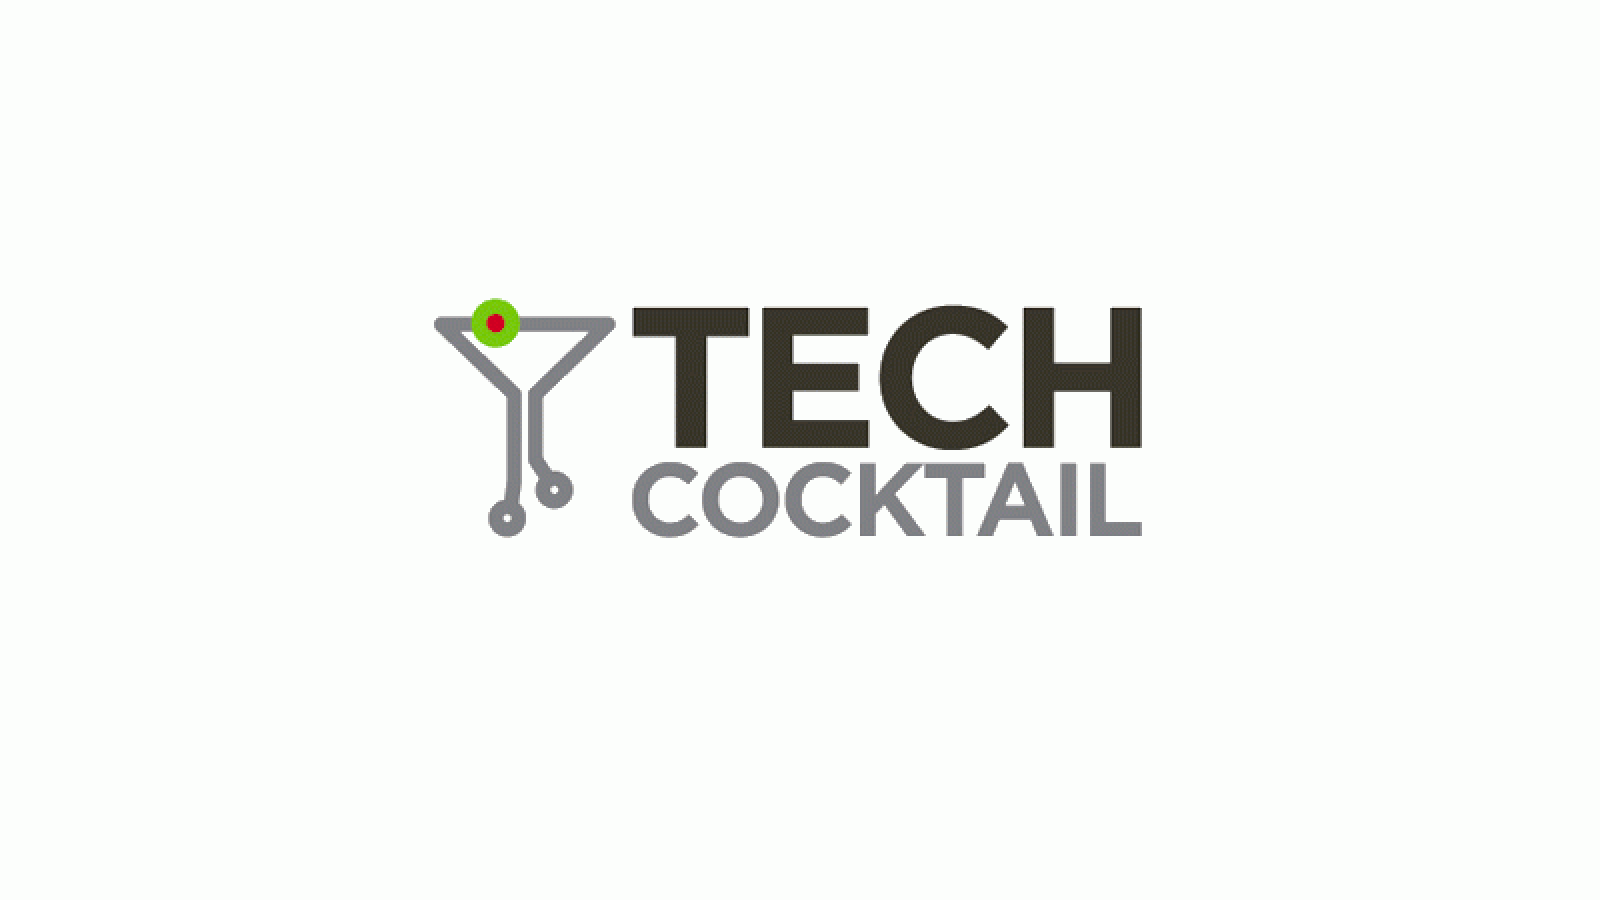 Jostle featured at Tech Cocktail mixer